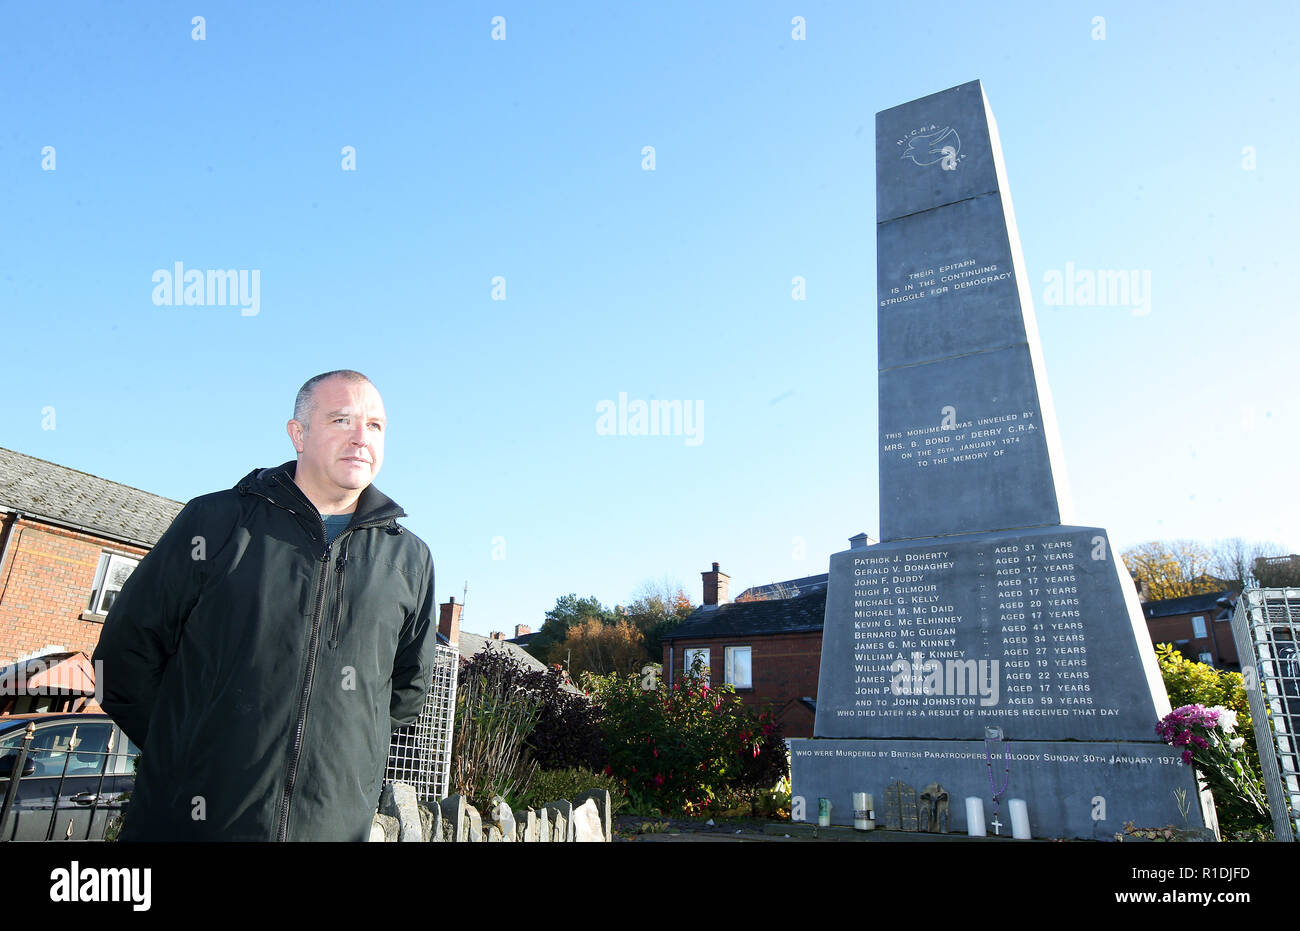 Londonderry, UK. 08th Nov, 2018. Gleann Doherty stands next to a memorial commemorating the victims of Bloody Sunday in 1972, when British soldiers shot 13 demonstrators and injured 13 others. Glenn's father Patrick Doherty was one of those killed on Bloody Sunday. Some of the worst acts of violence during the riots took place in the area. Today Derry is a tourist attraction because of the political murals. Credit: Jonathan Porter/PressEye/dpa/Alamy Live News - Stock Image